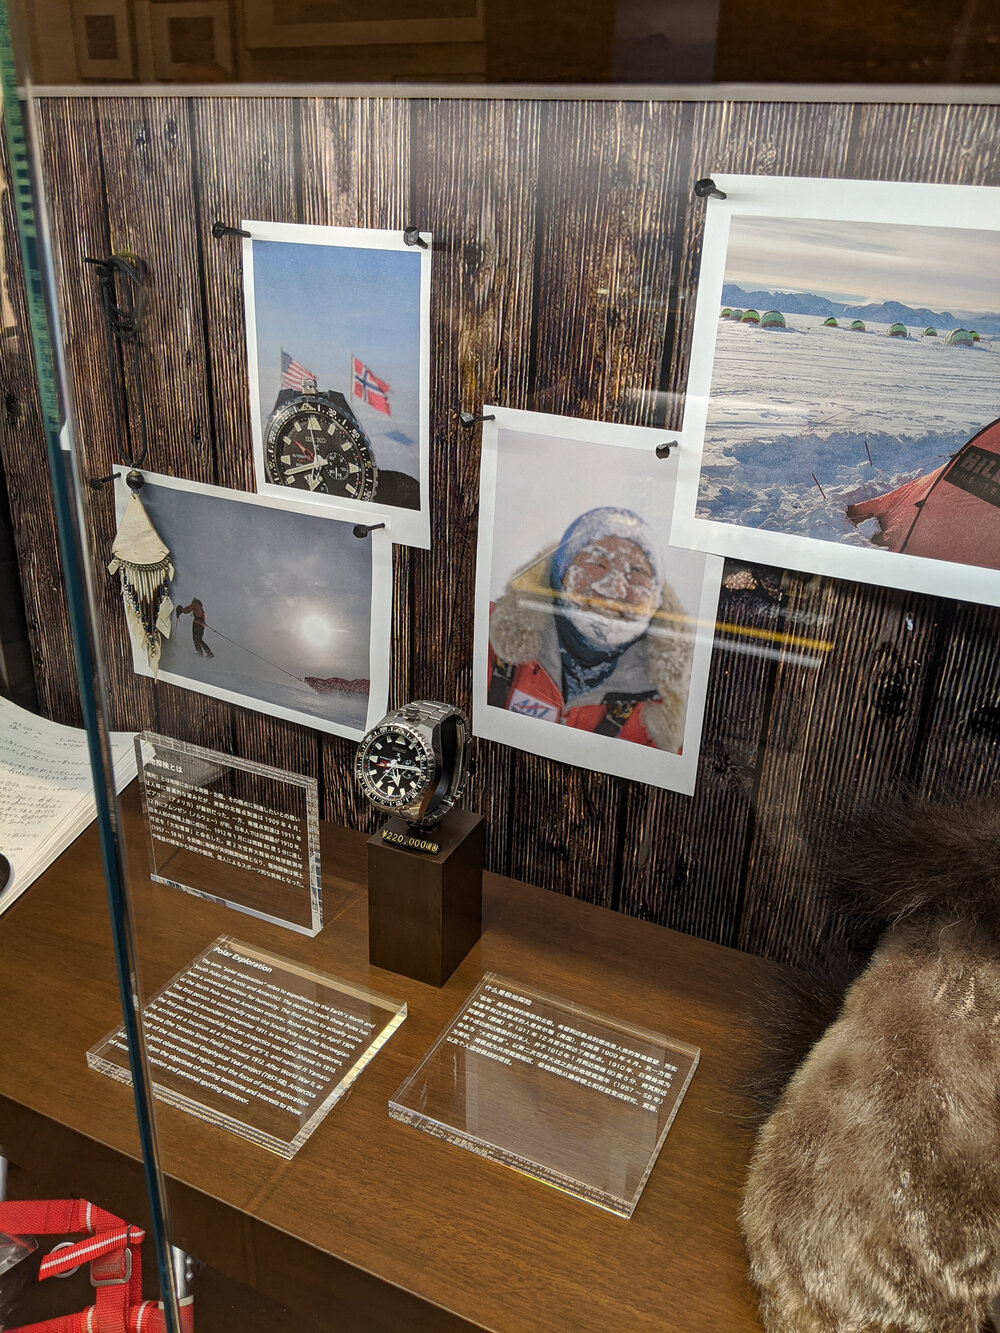 Photos from South Pole